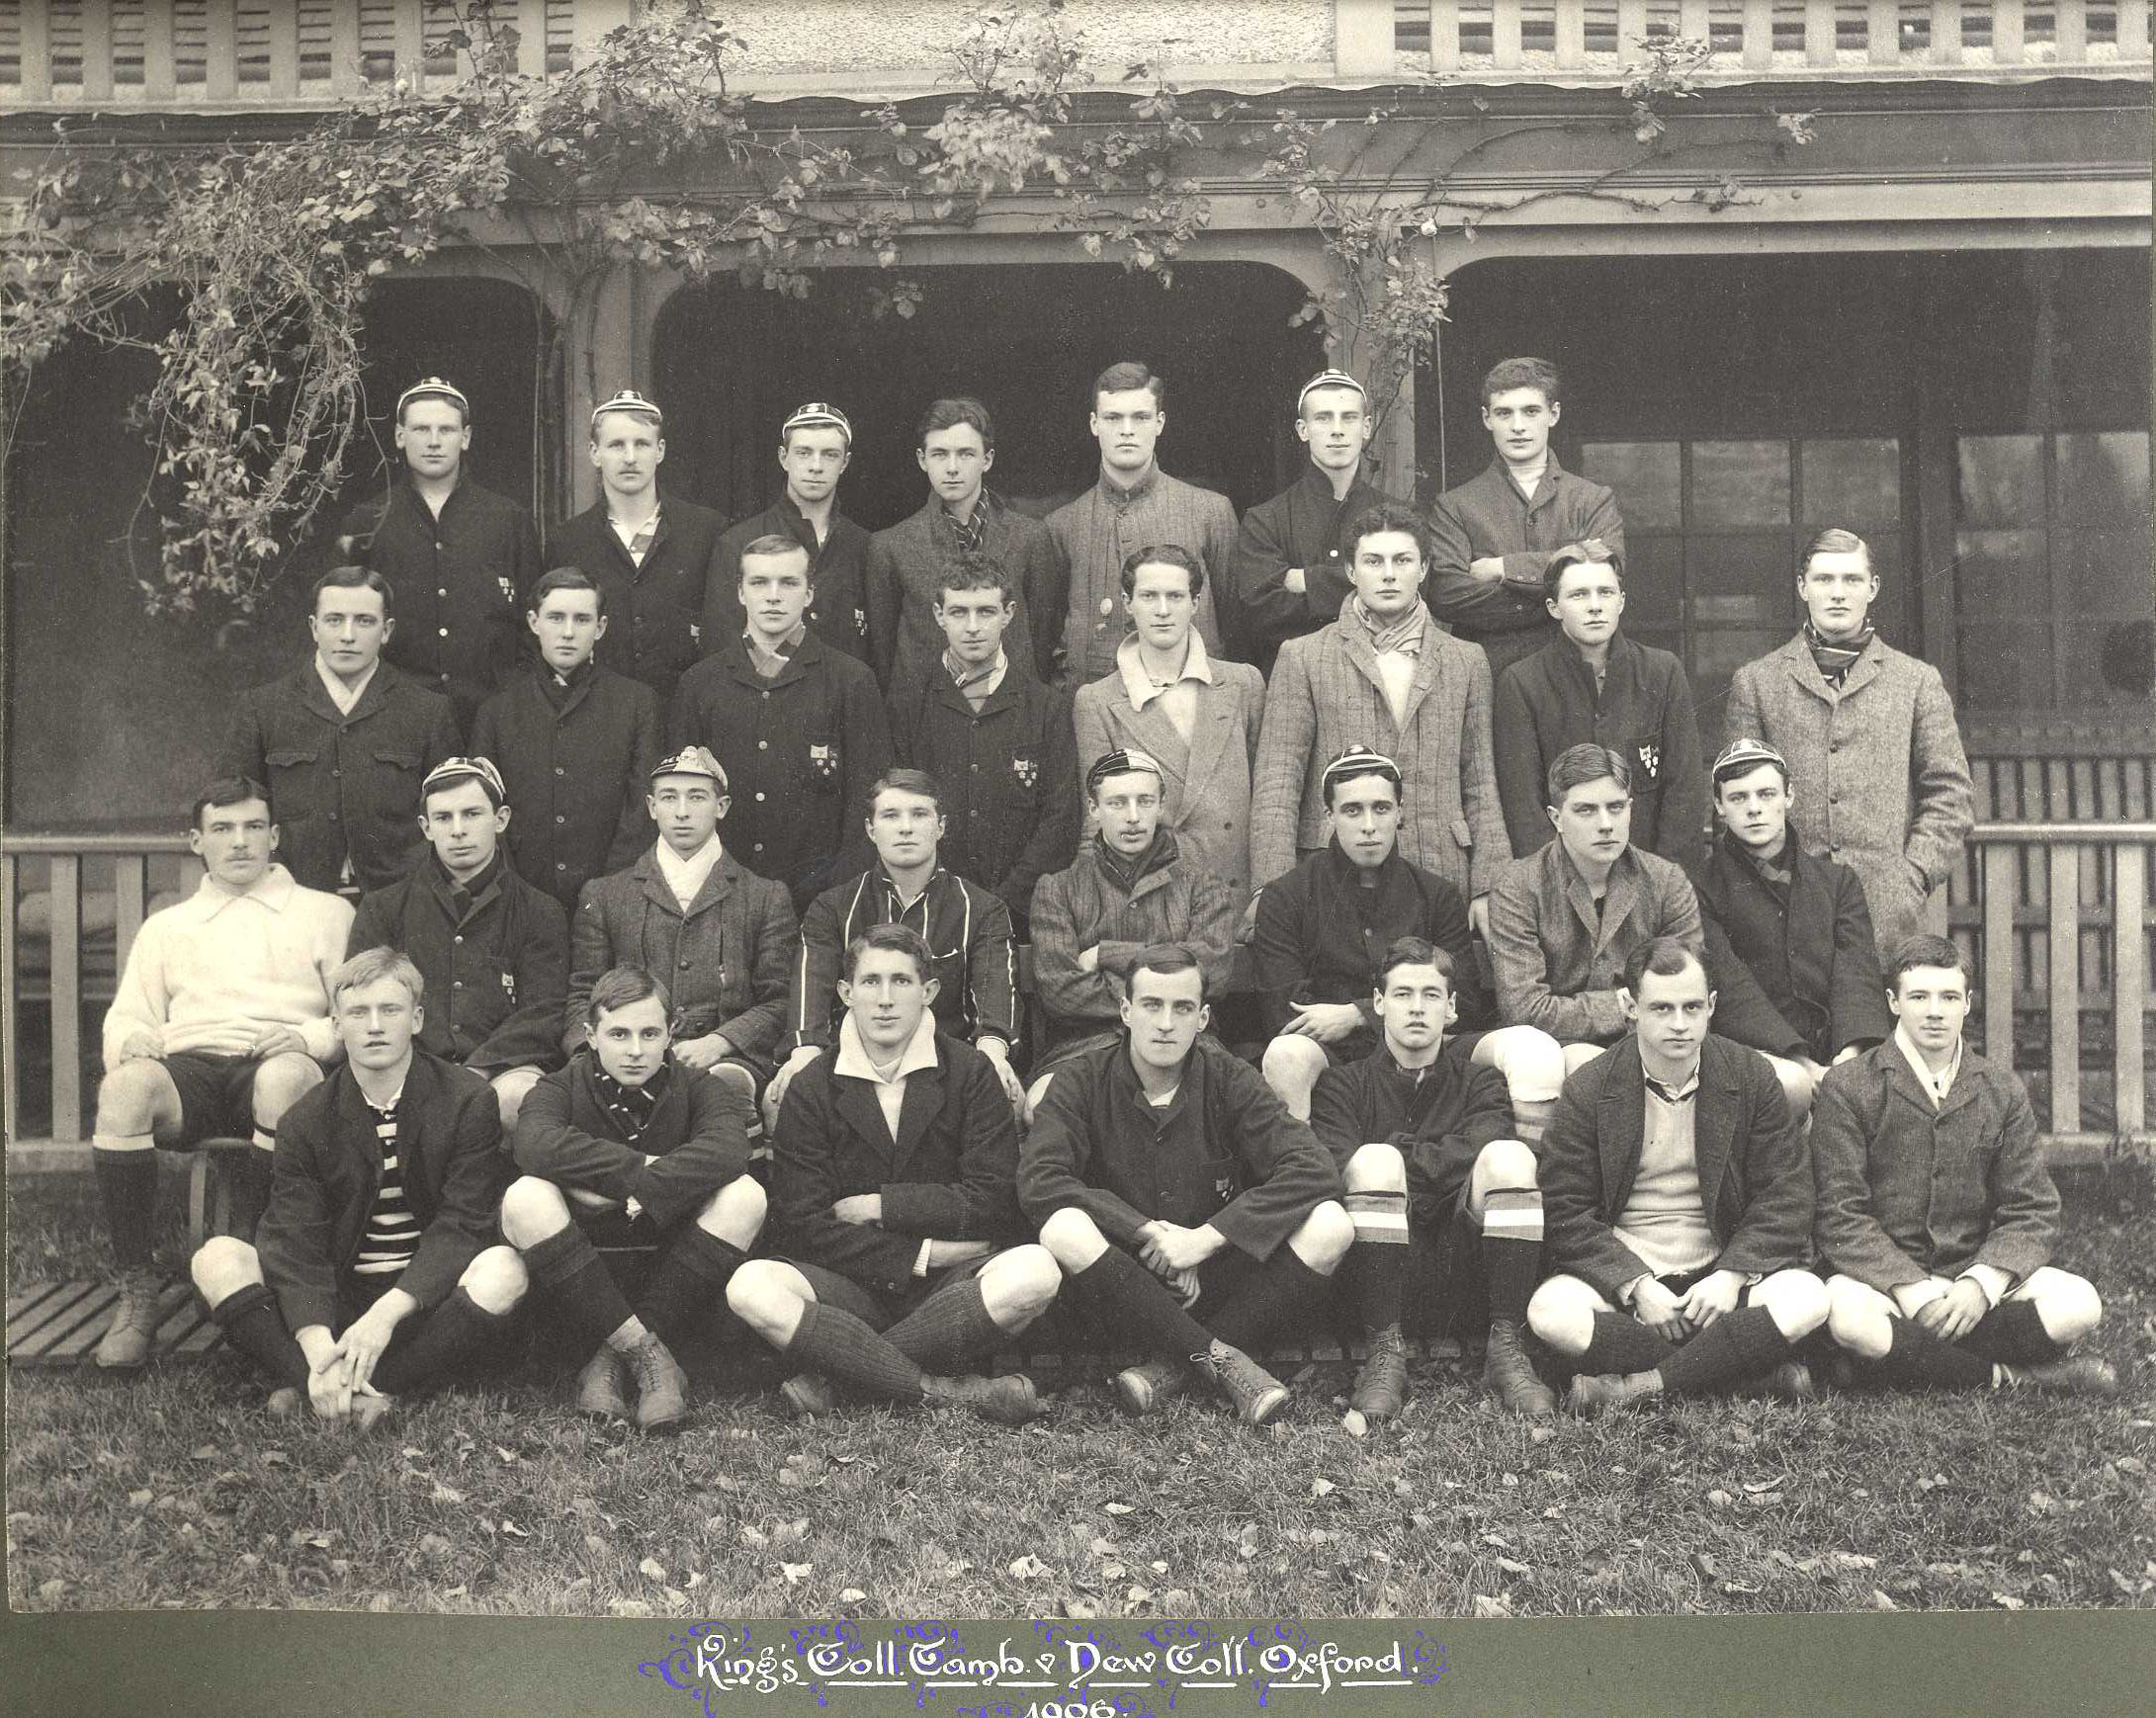 King's College Cambridge [Rugby Football team] vs. New College Oxford, 1907. [KCAC/1/3/6/4/2]